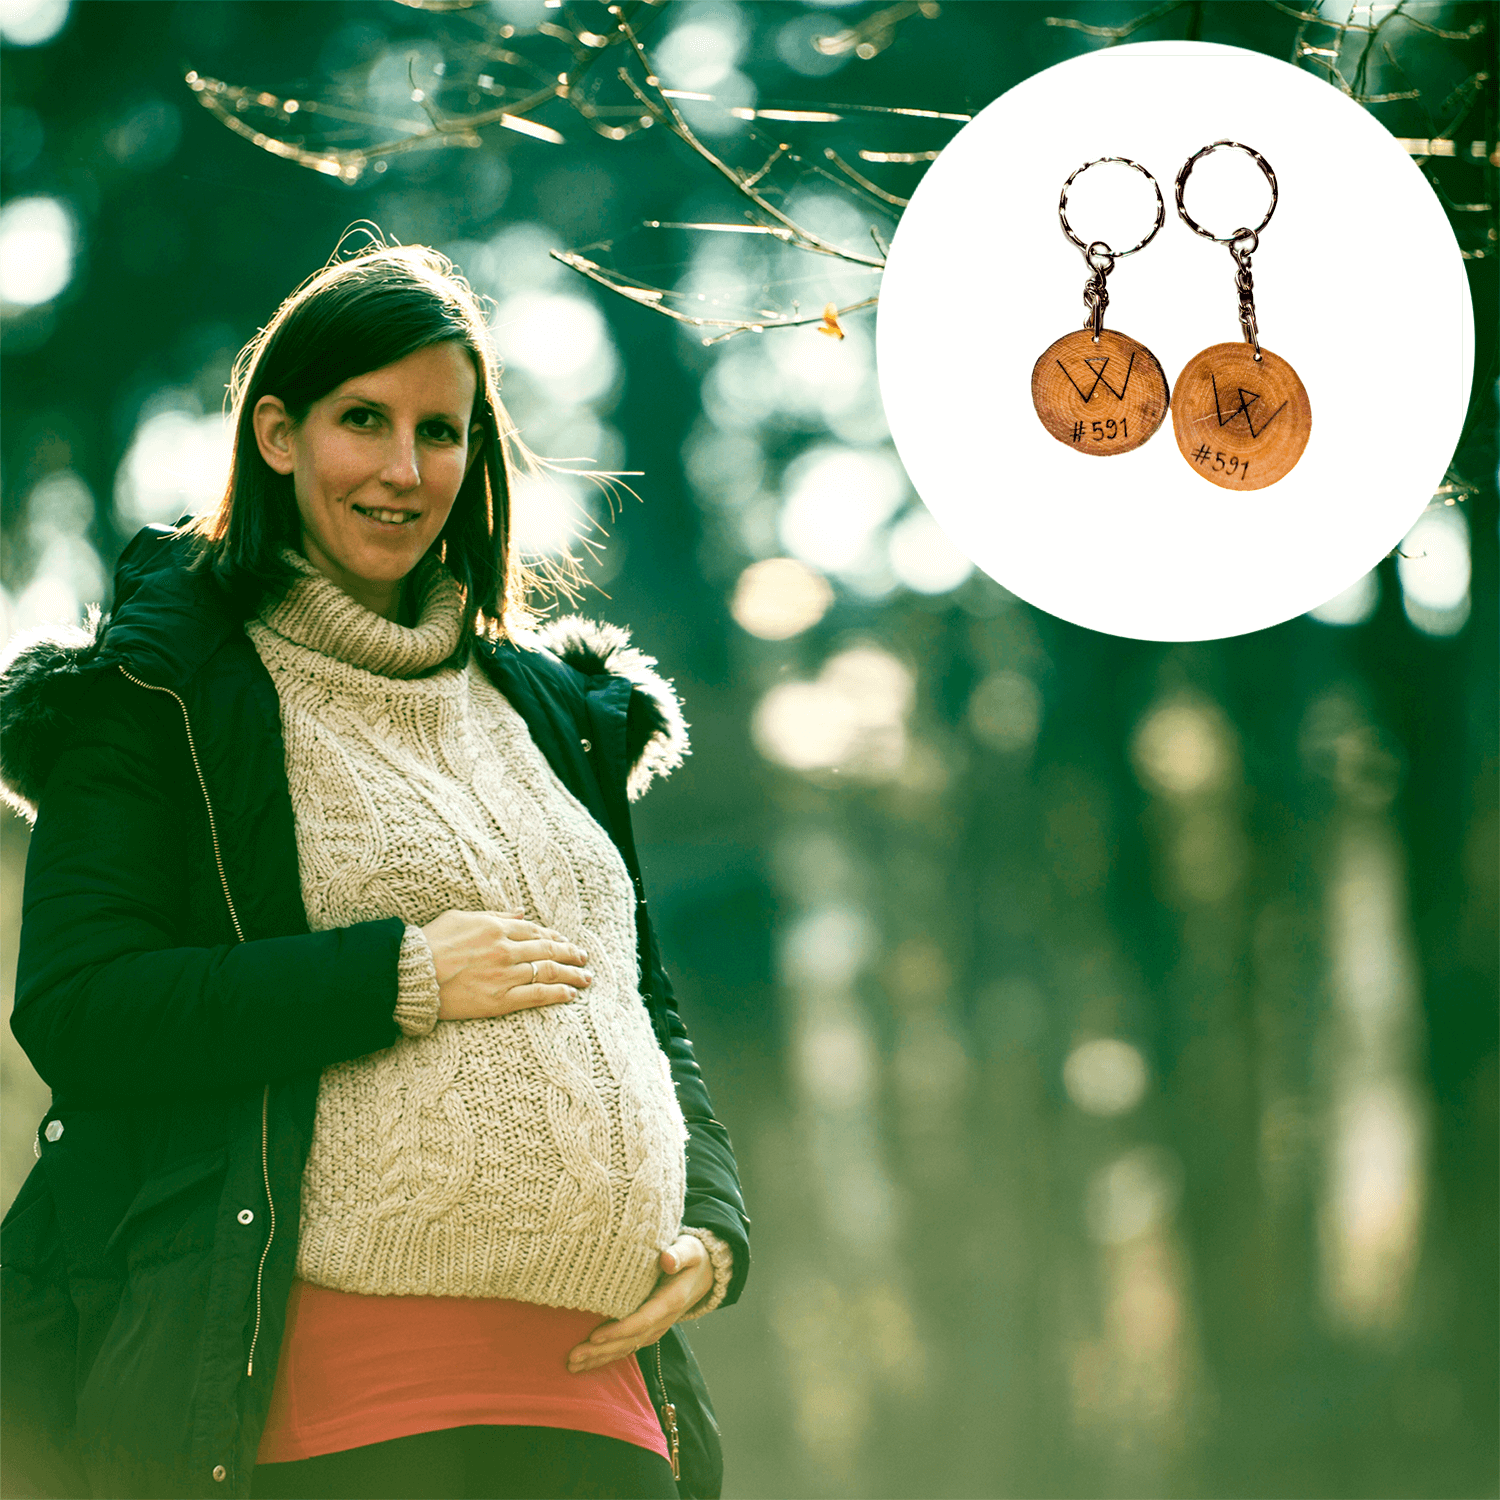 Protect 10 Square Feet of Forest + Get 2 Recycled Wooden Keychains